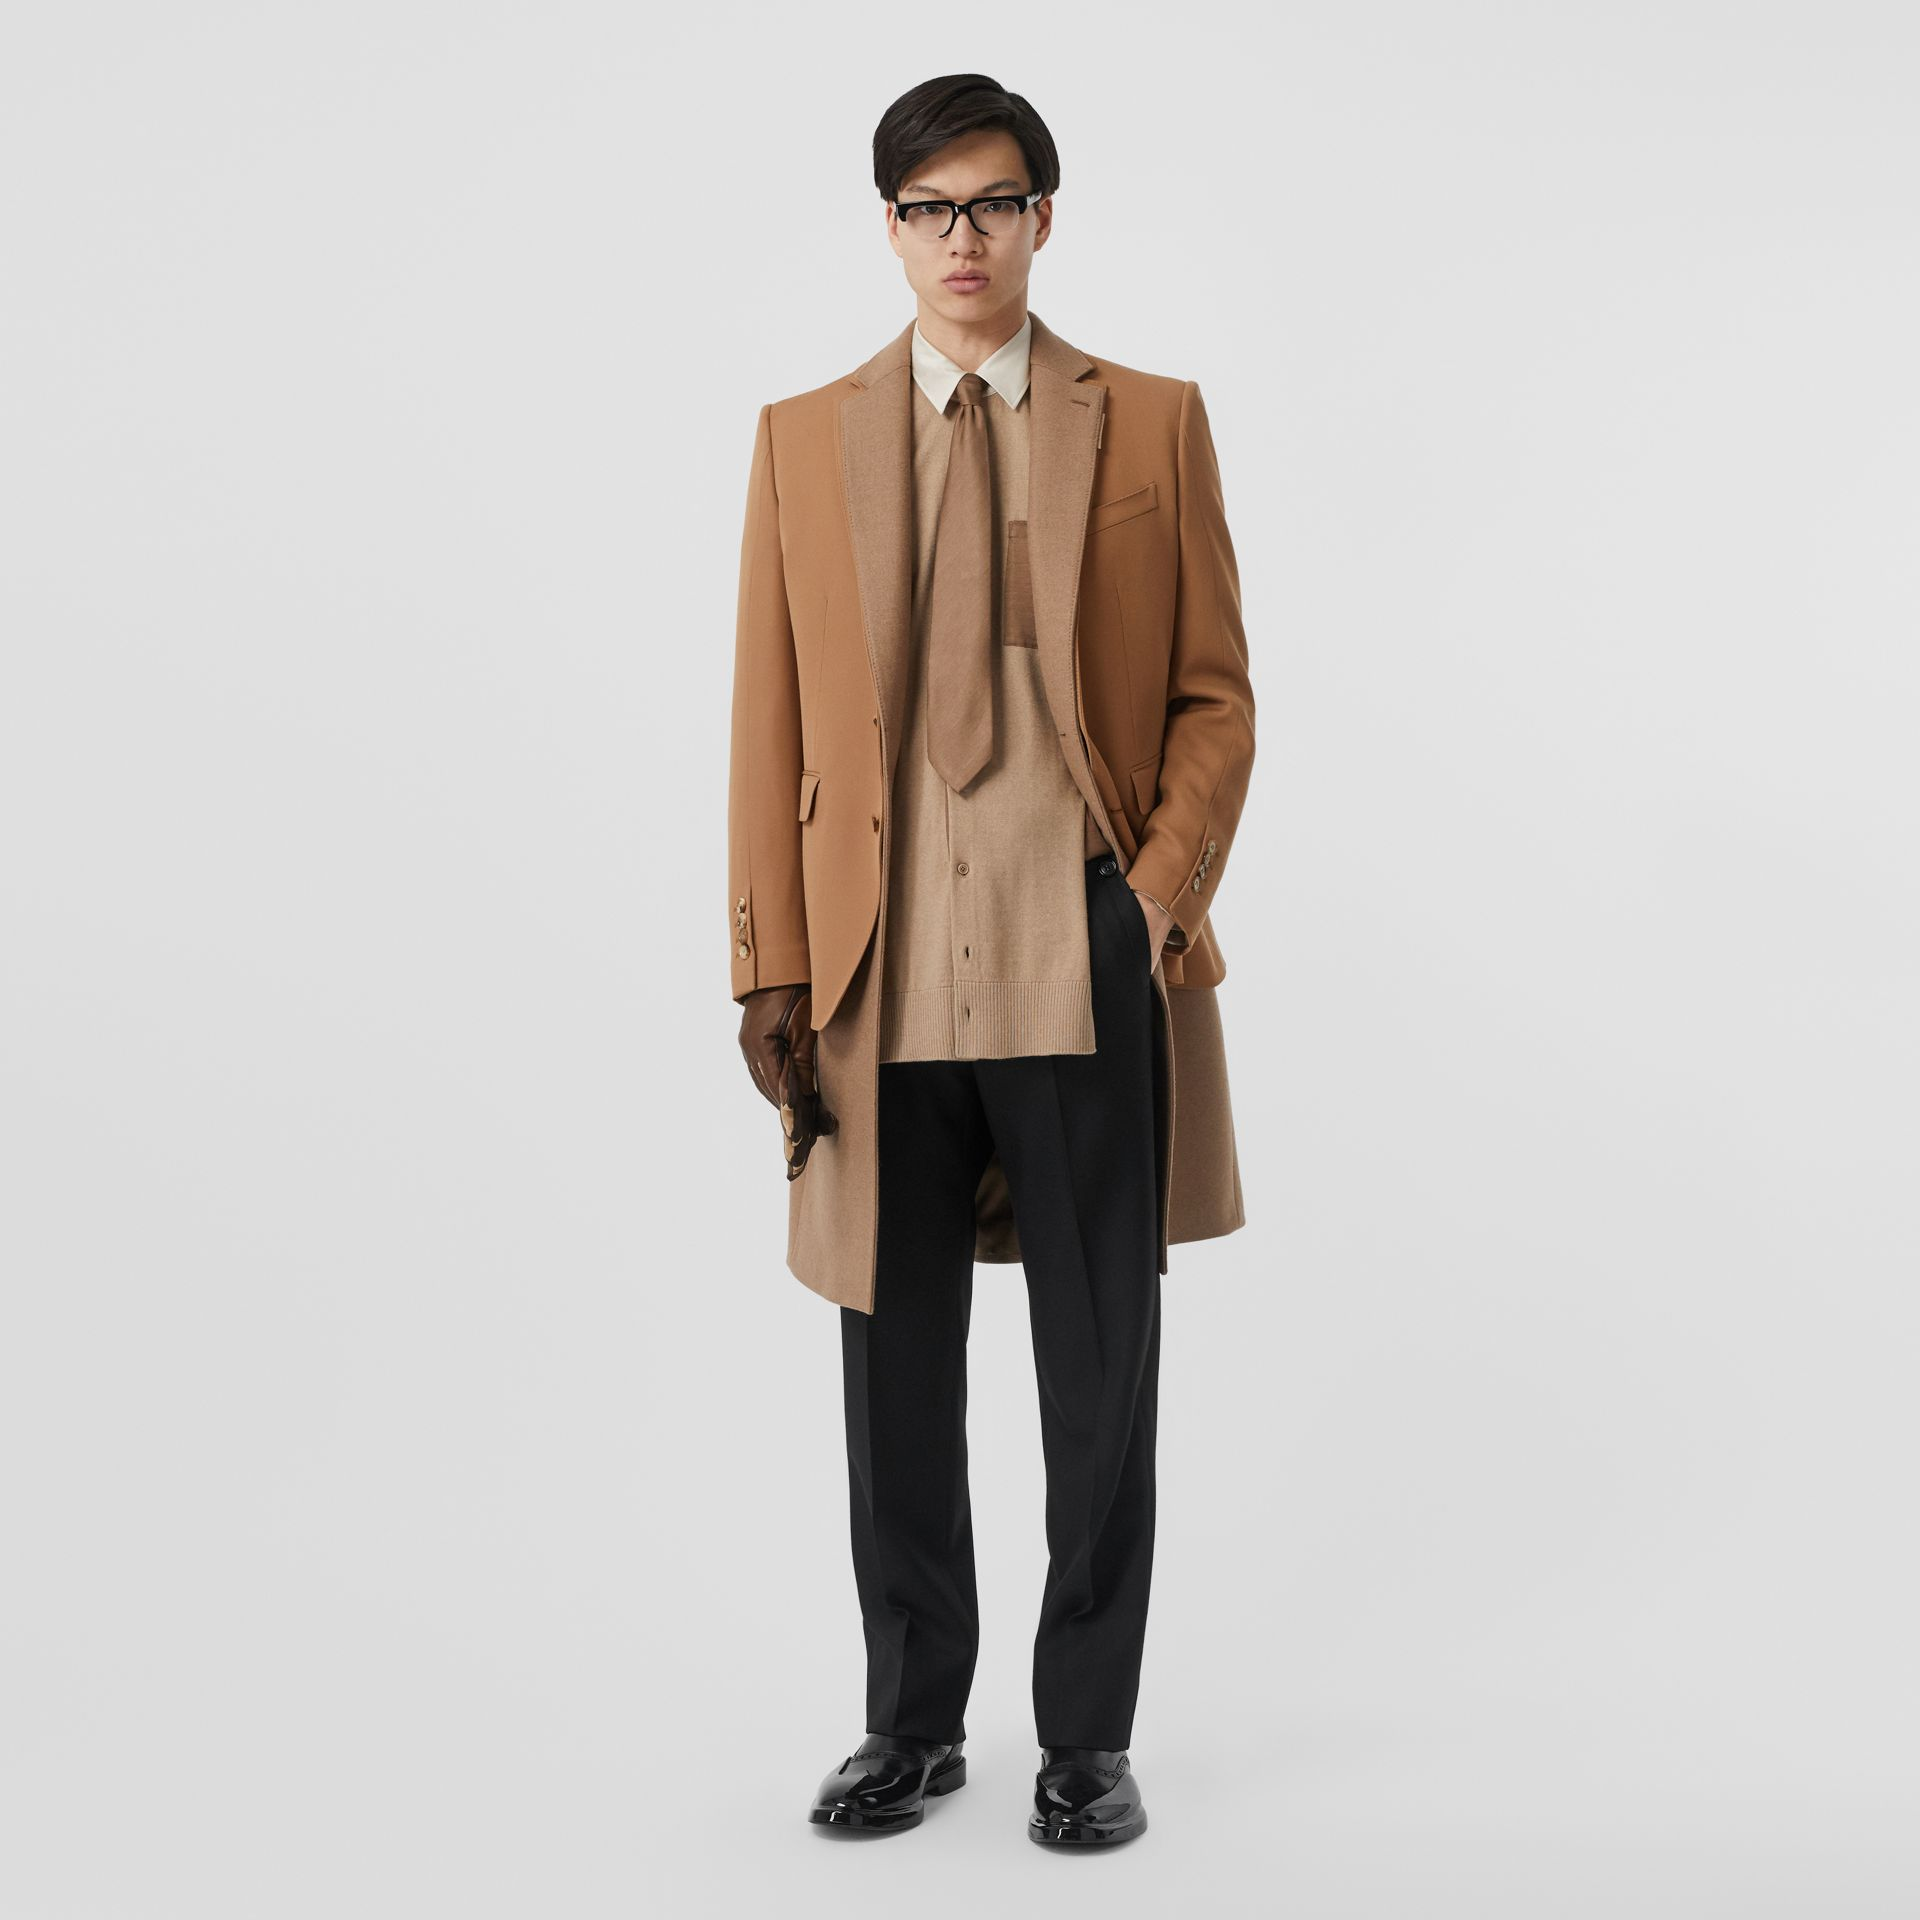 Camel Hair Coat with Detachable Wool Jacket in Warm - Men | Burberry - gallery image 0